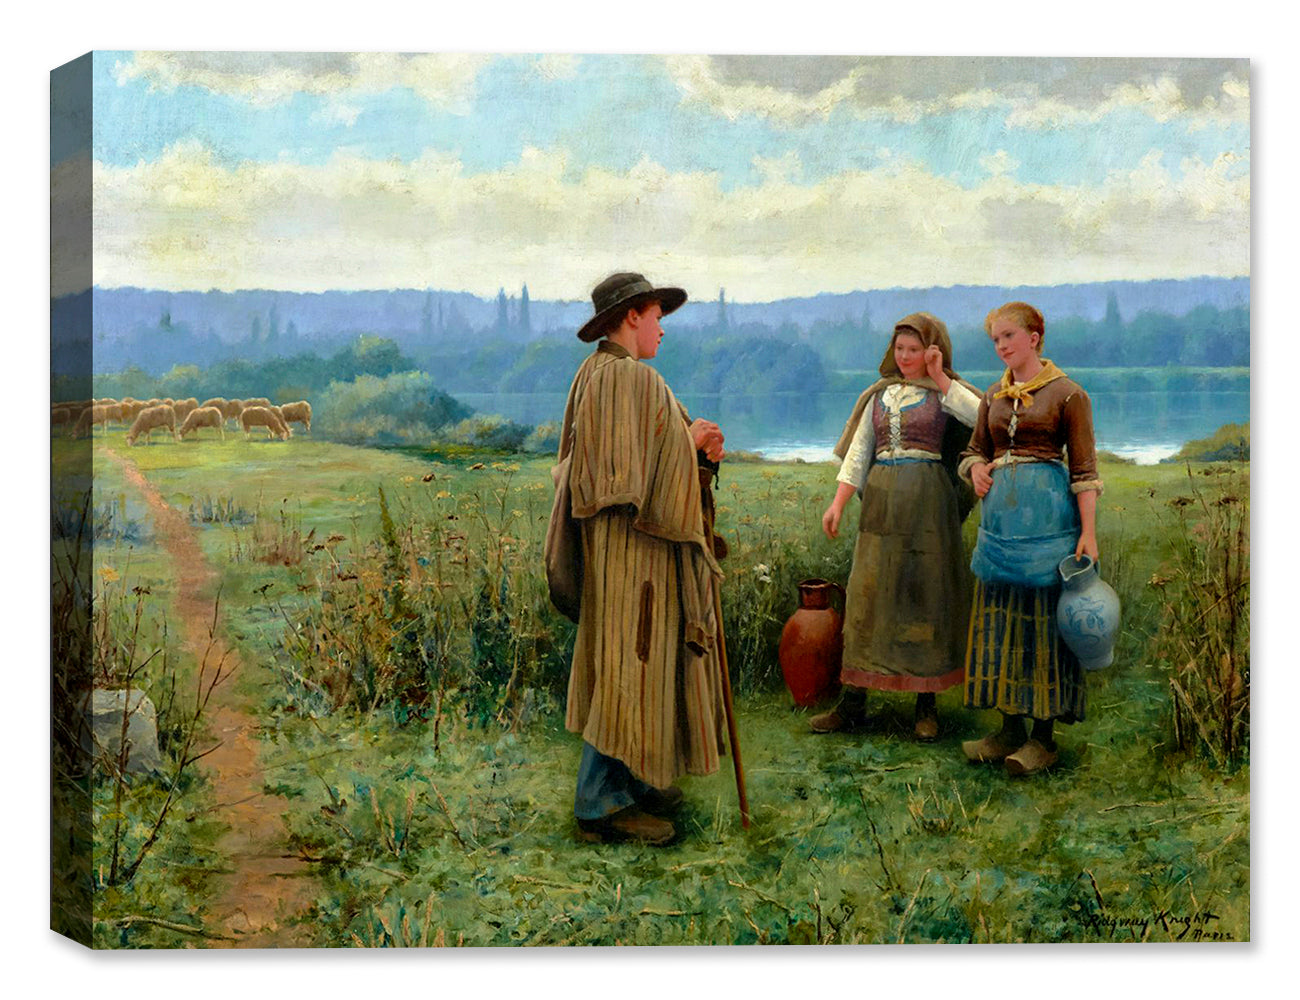 An Idle Moment by Daniel Knight - Canvas Art